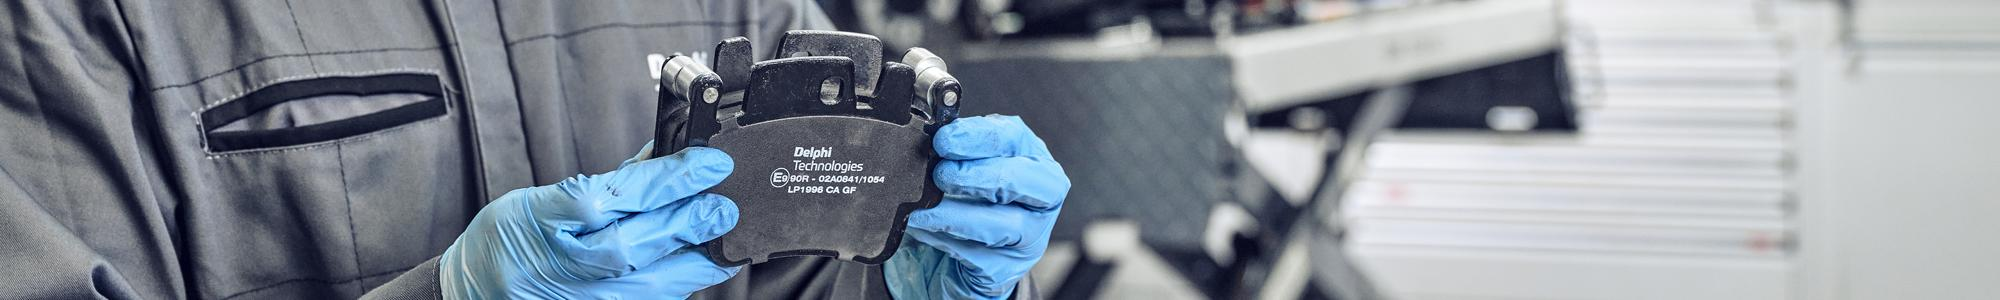 A man with gloves holding a Delphi Technologies brake pad in a workshop.